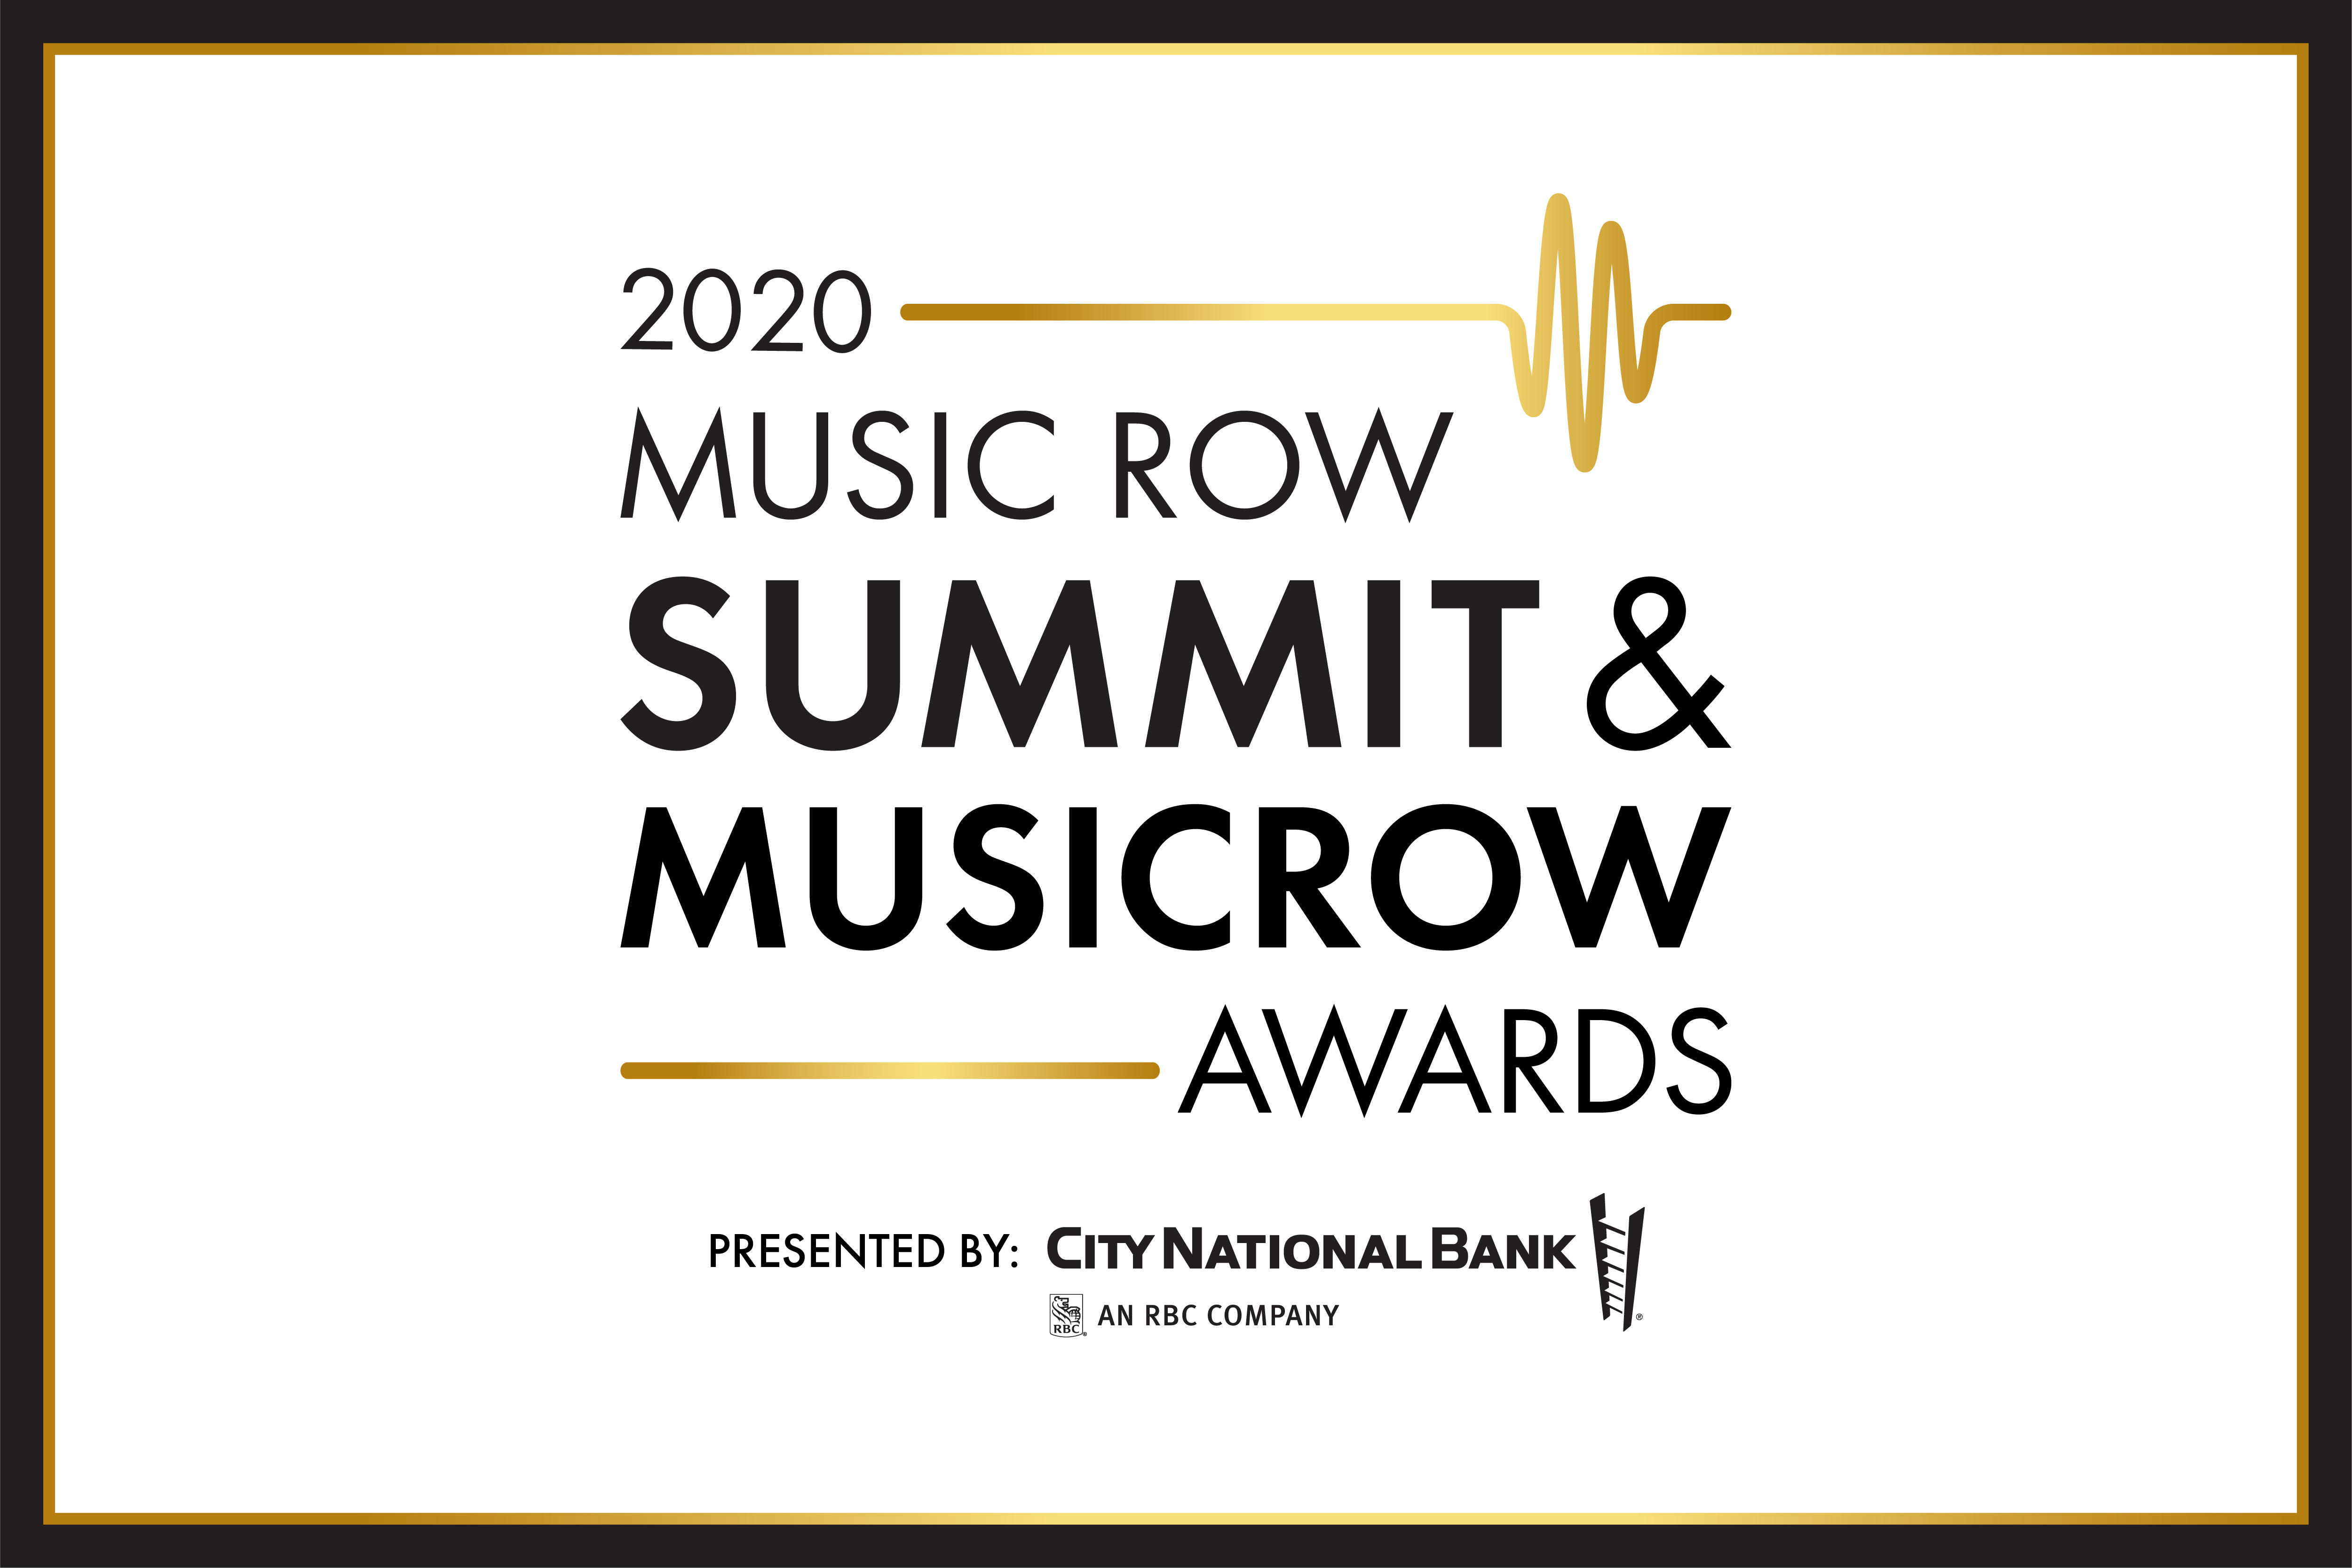 Save The Date: MusicRow Awards And Inaugural Music Row Summit